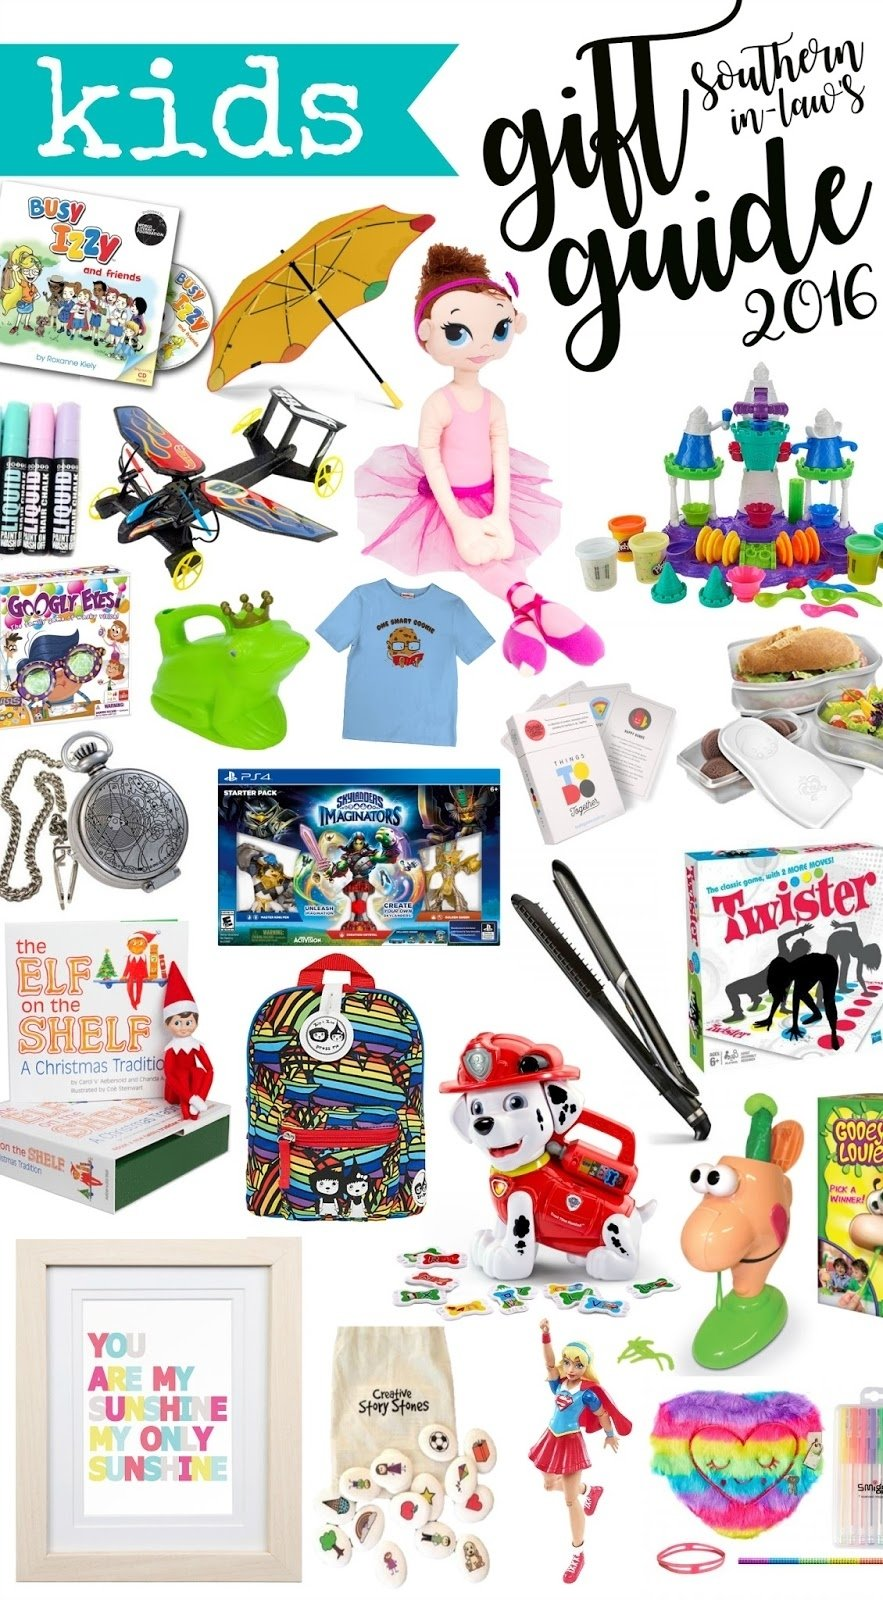 10 Gorgeous Christmas Gift Ideas For Toddlers southern in law 2016 kids christmas gift guide 5 2021